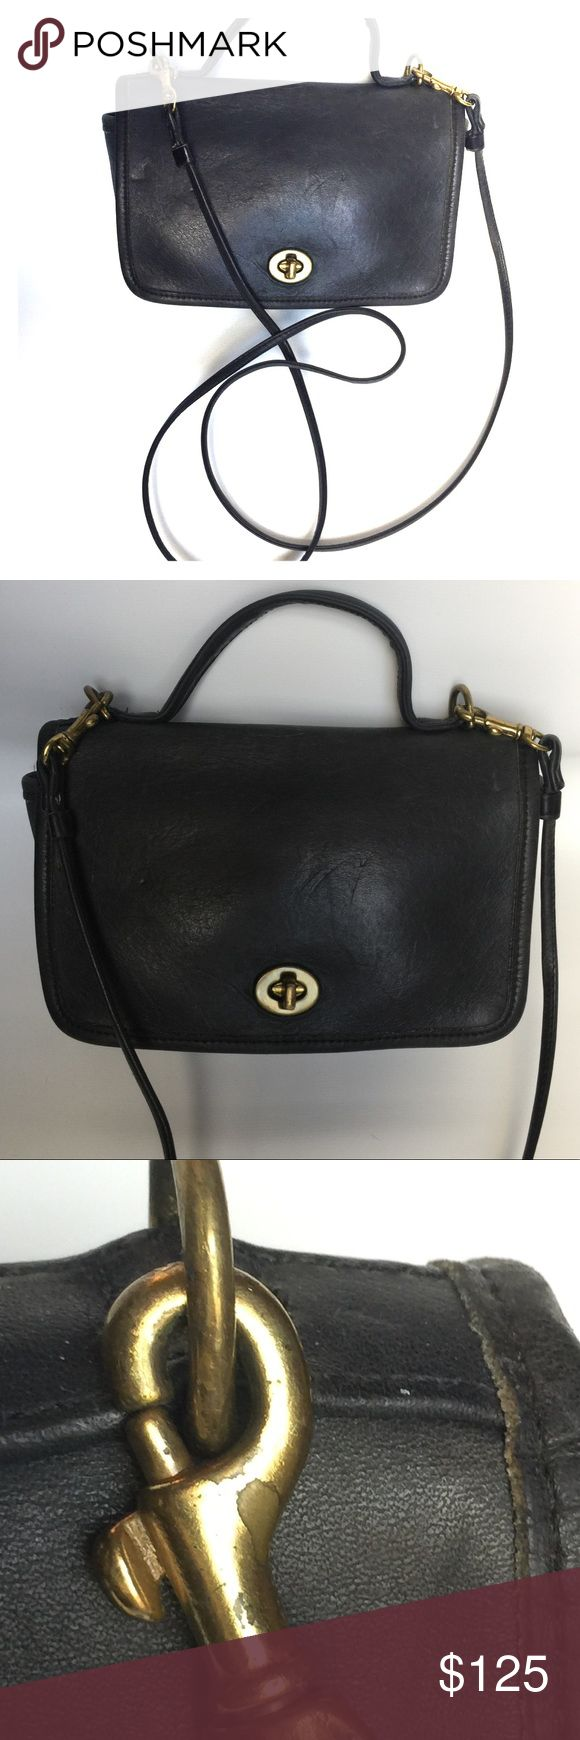 Vintage Authentic Coach Cross body bag blk leather Vintage Authentic Coach black leather cross body bag with distressed brass hardware.  Measures about 5x7x3 Ultra soft leather.   Totally rustic & tough girl cute! Great for riding Harley Davidson motorcycles and attending music festivals. Goth preppy rodeo lol Coach Bags Crossbody Bags